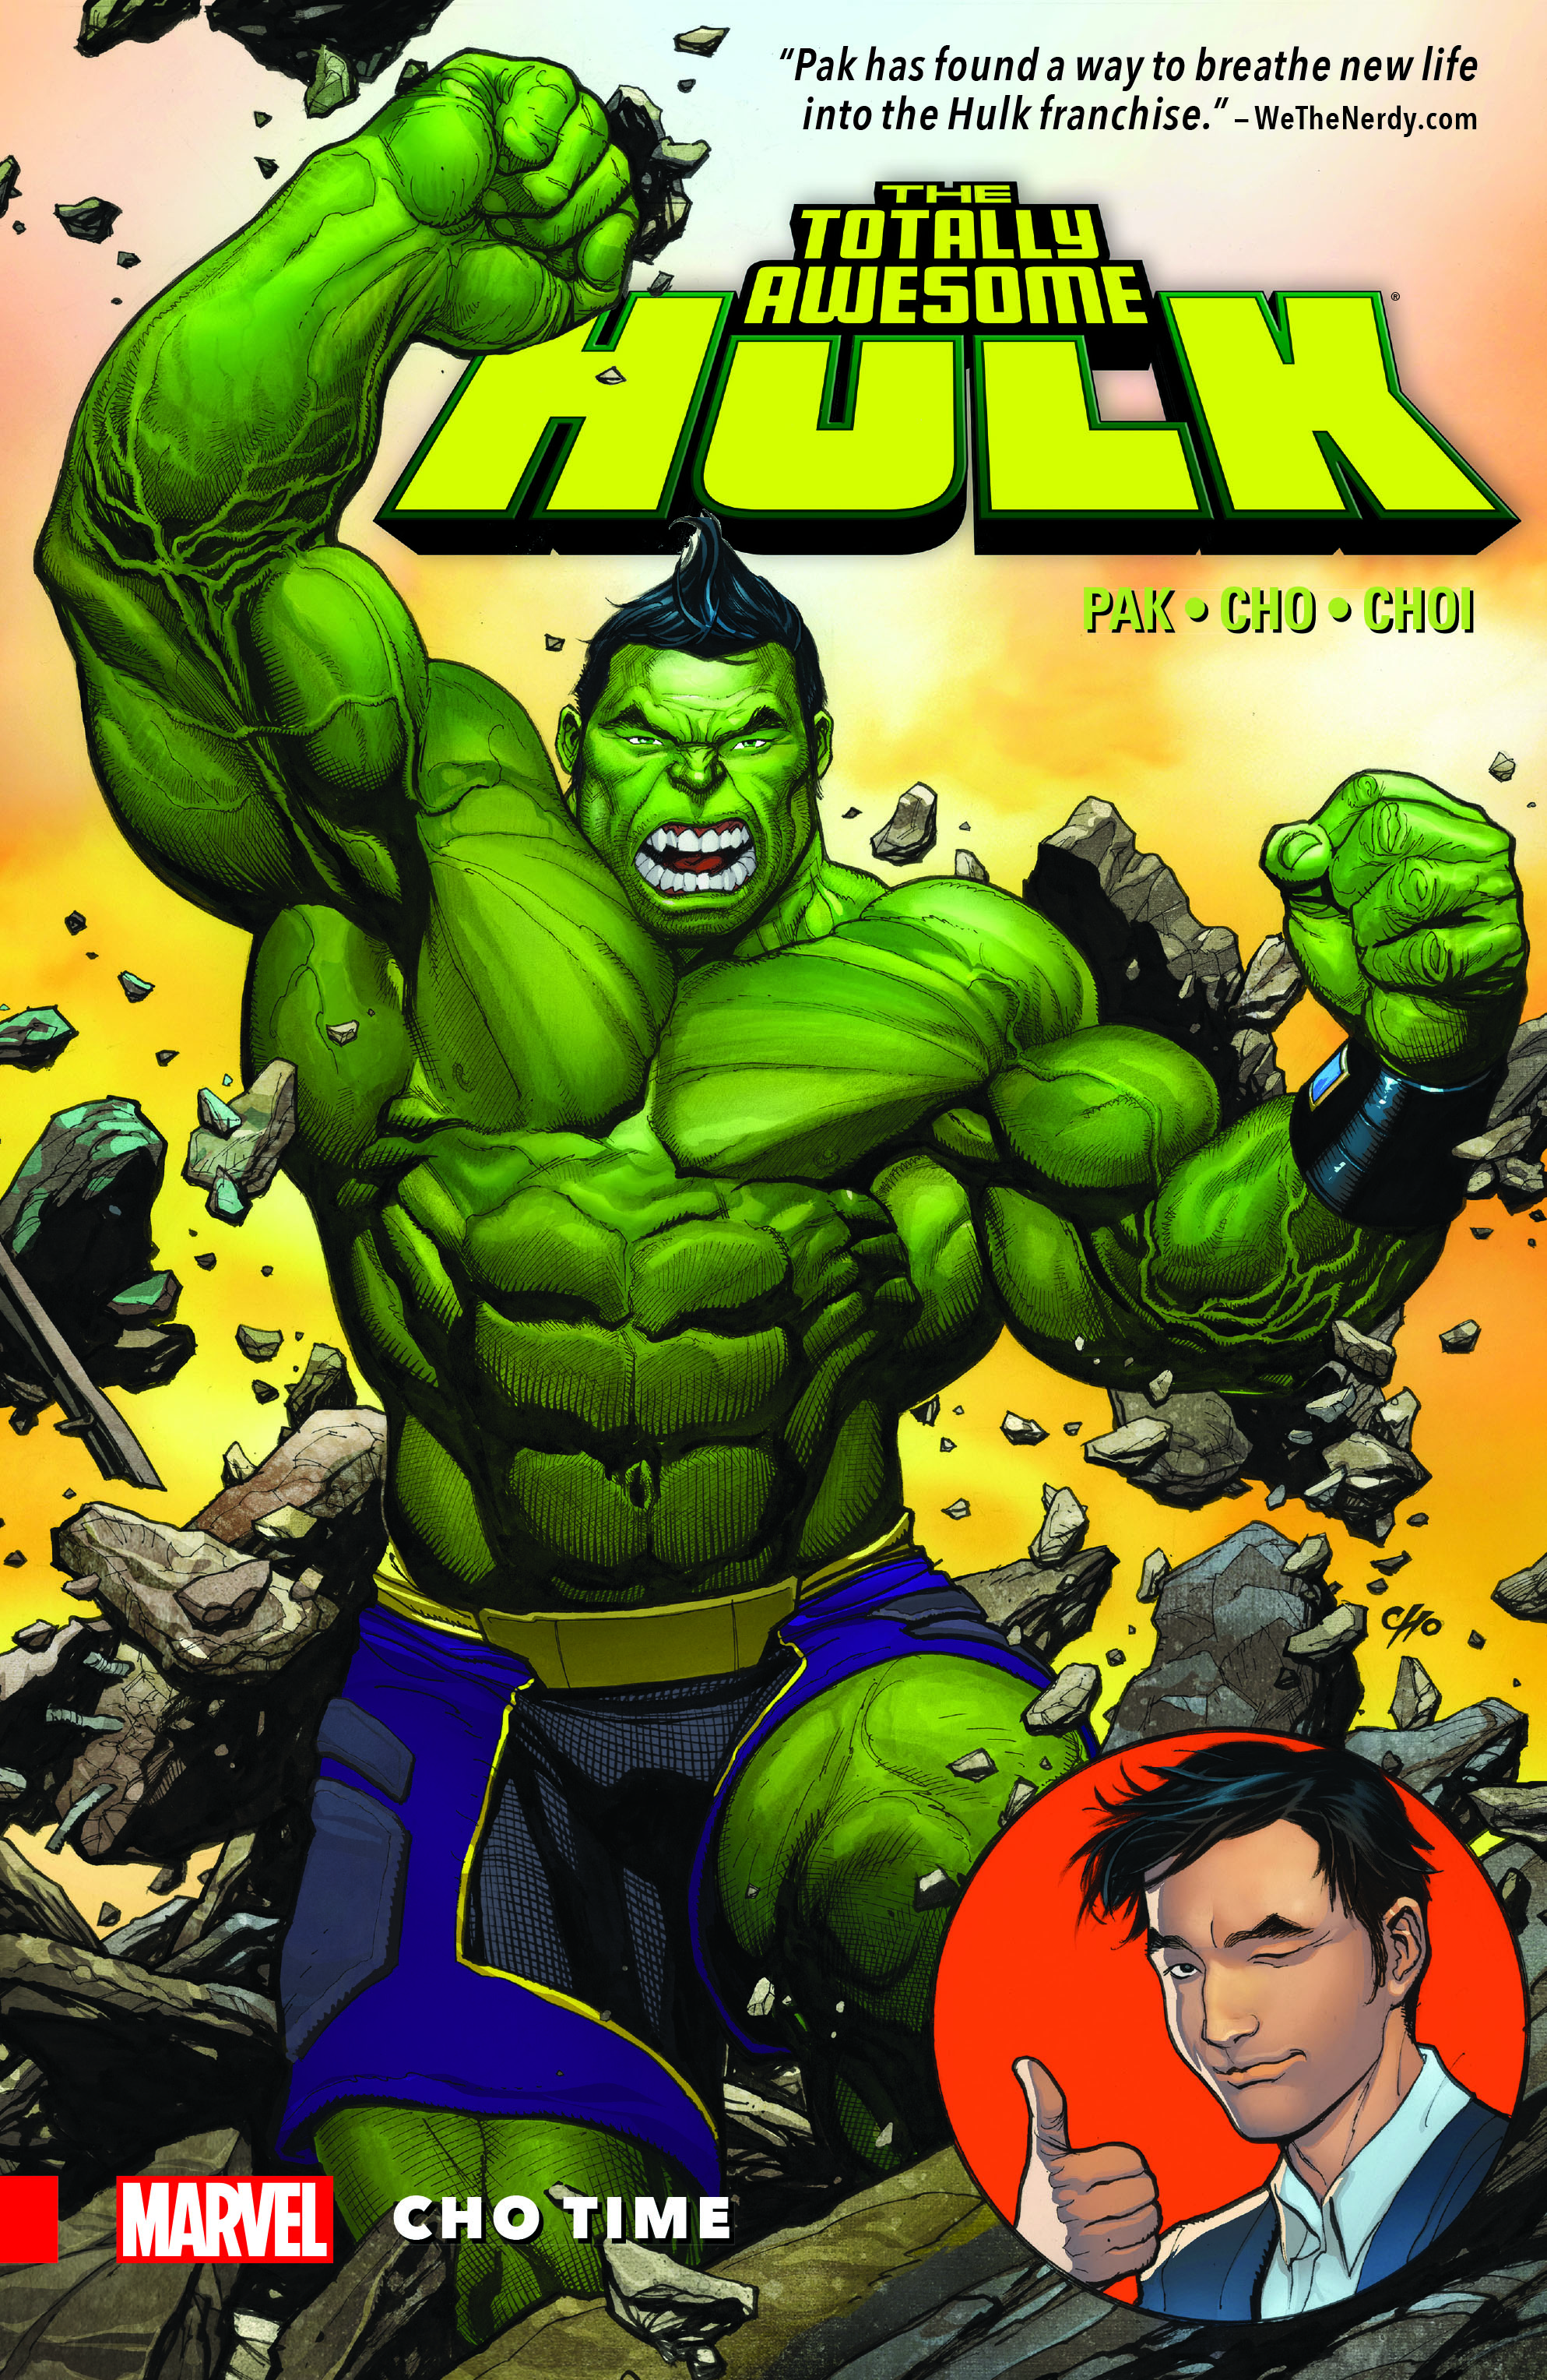 THE TOTALLY AWESOME HULK VOL. 1: CHO TIME (Trade Paperback)